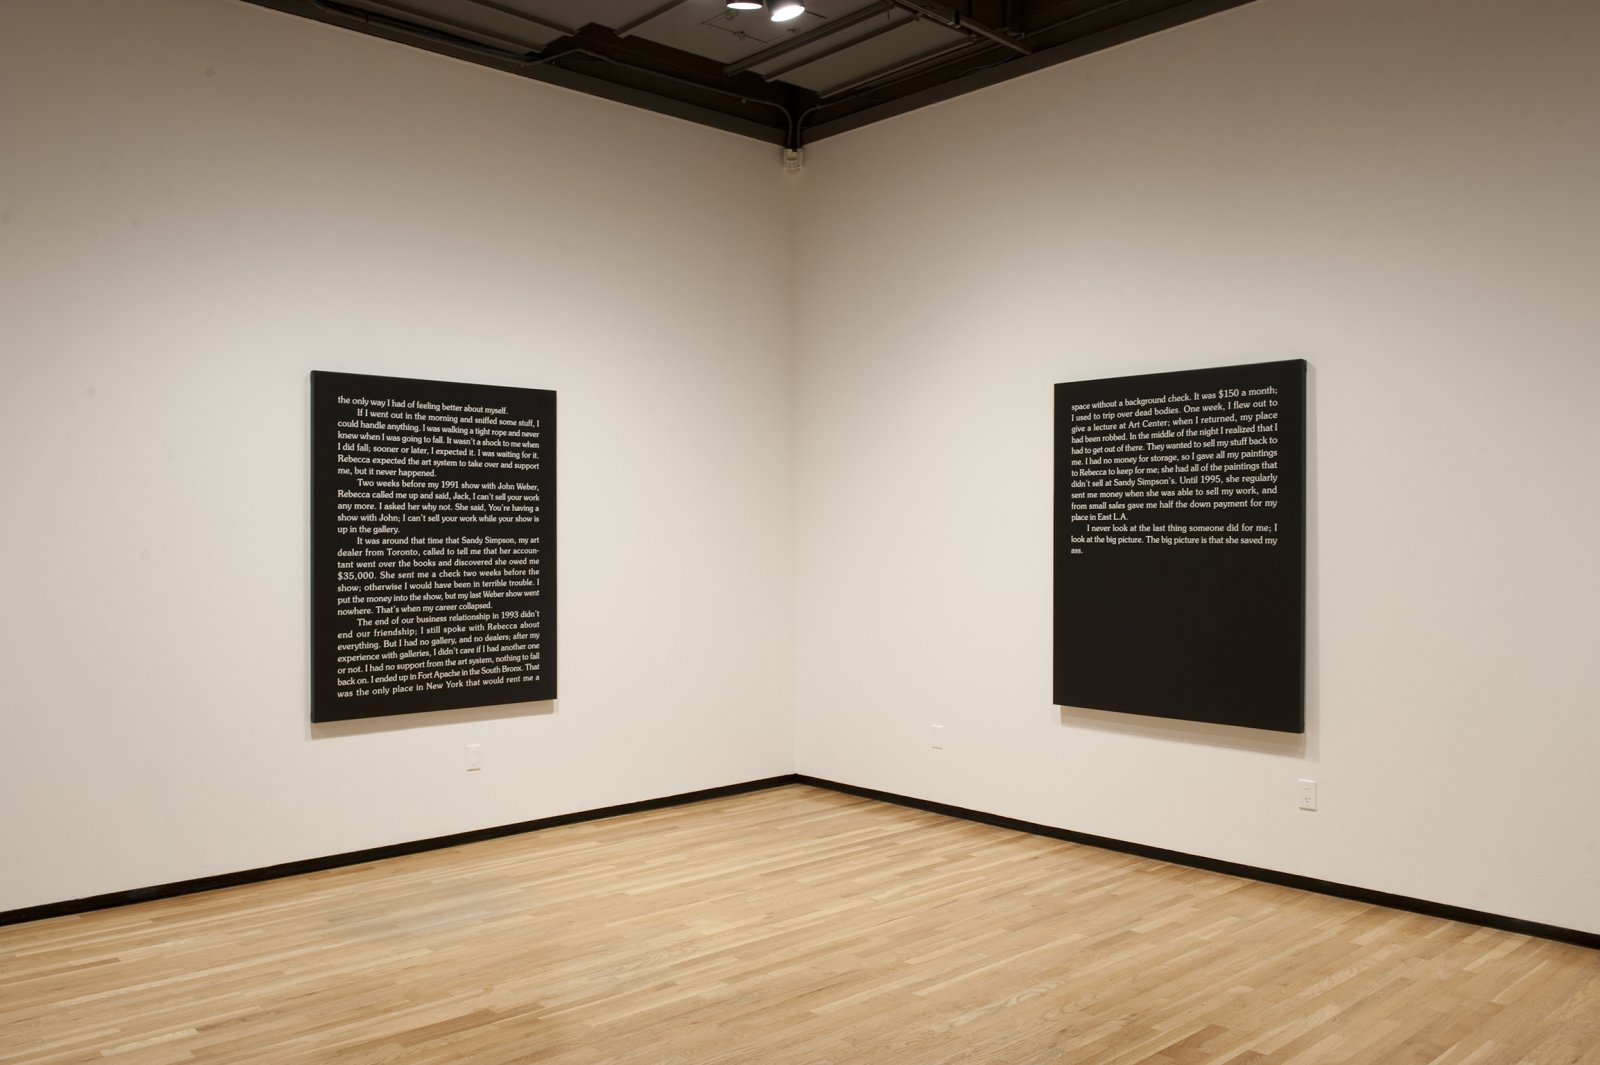 Ron Terada,Jack, 2010, acrylic on canvas, each60 x 48 in. (152 x 122 cm). Installation view,Who I Think I Am, Walter Phillips Gallery, Banff, AB, 2010